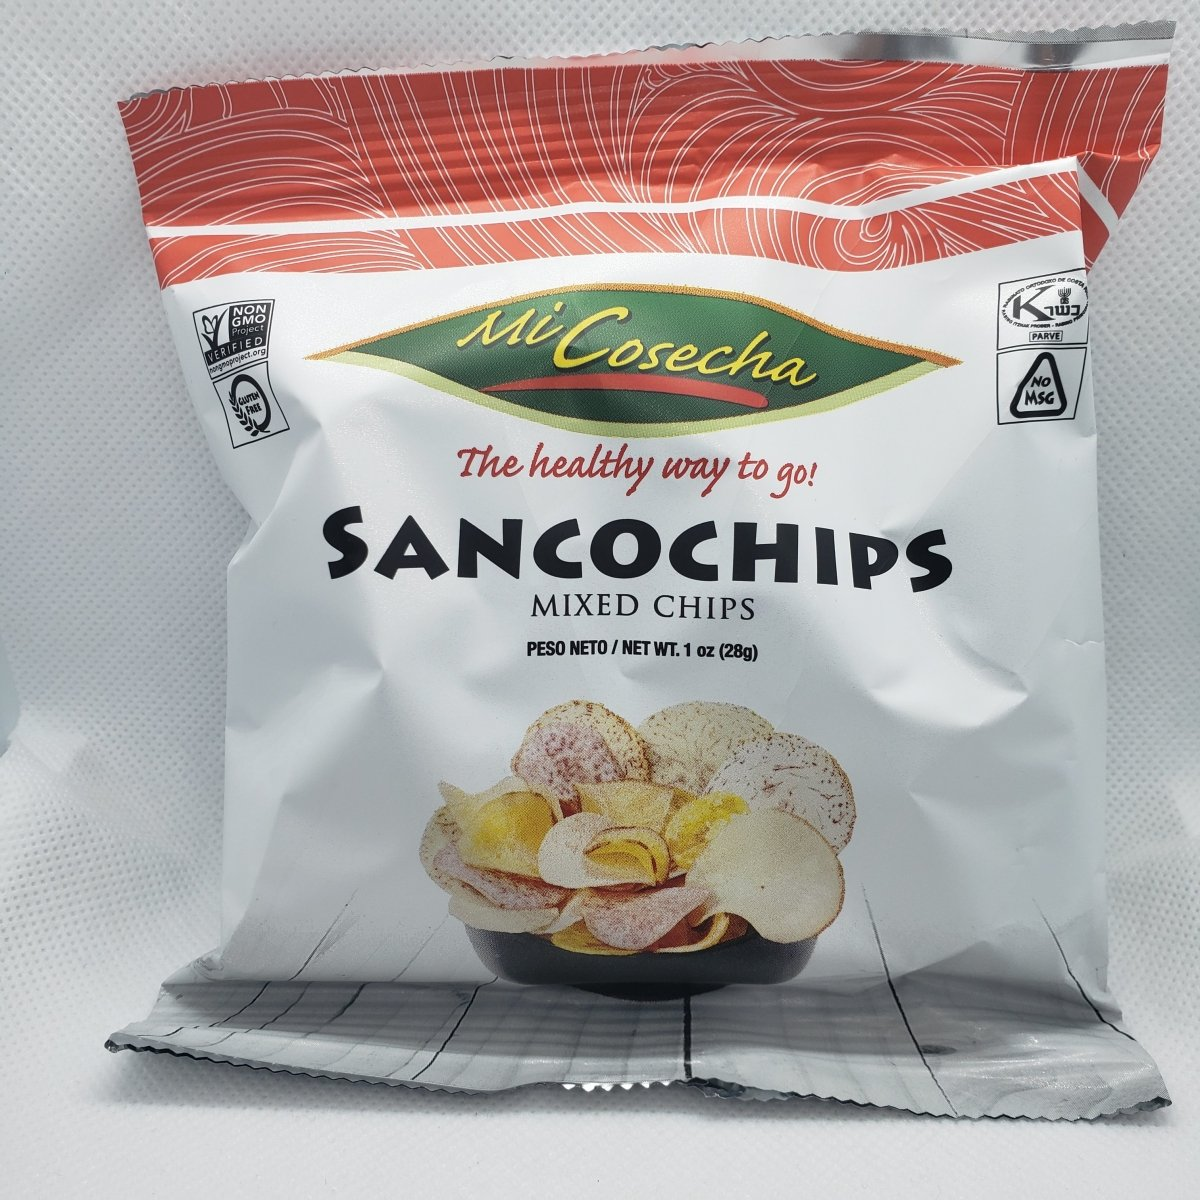 Sancochochips - Mixed Chips - Snack - 1oz - 1 Bag